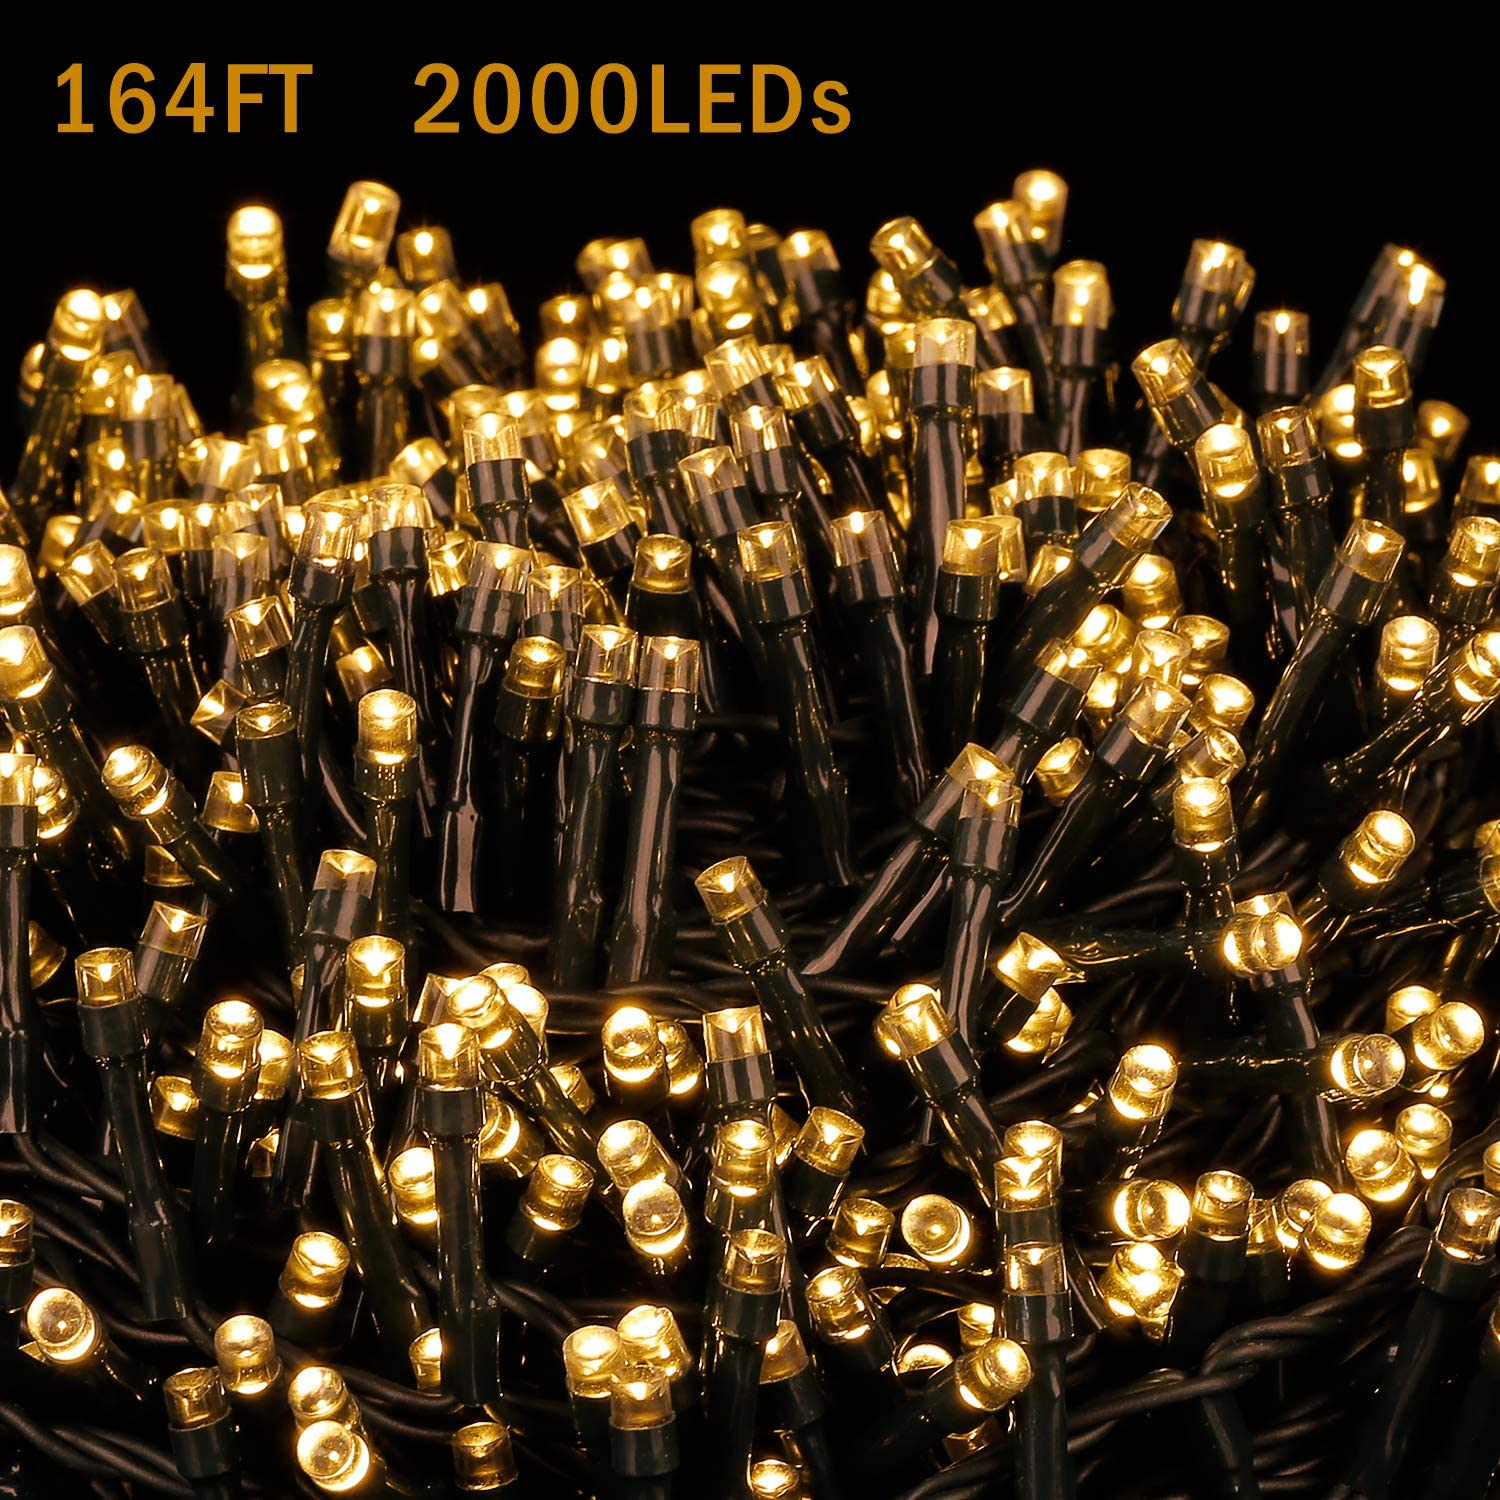 LED Outdoor String Lights - Novtech 164FT 2000LEDs Fairy String Lights Plug in Christmas Lights - Waterproof Decorative String Lights for Christmas Home Garden Patio Wedding Party Holiday - Warm White